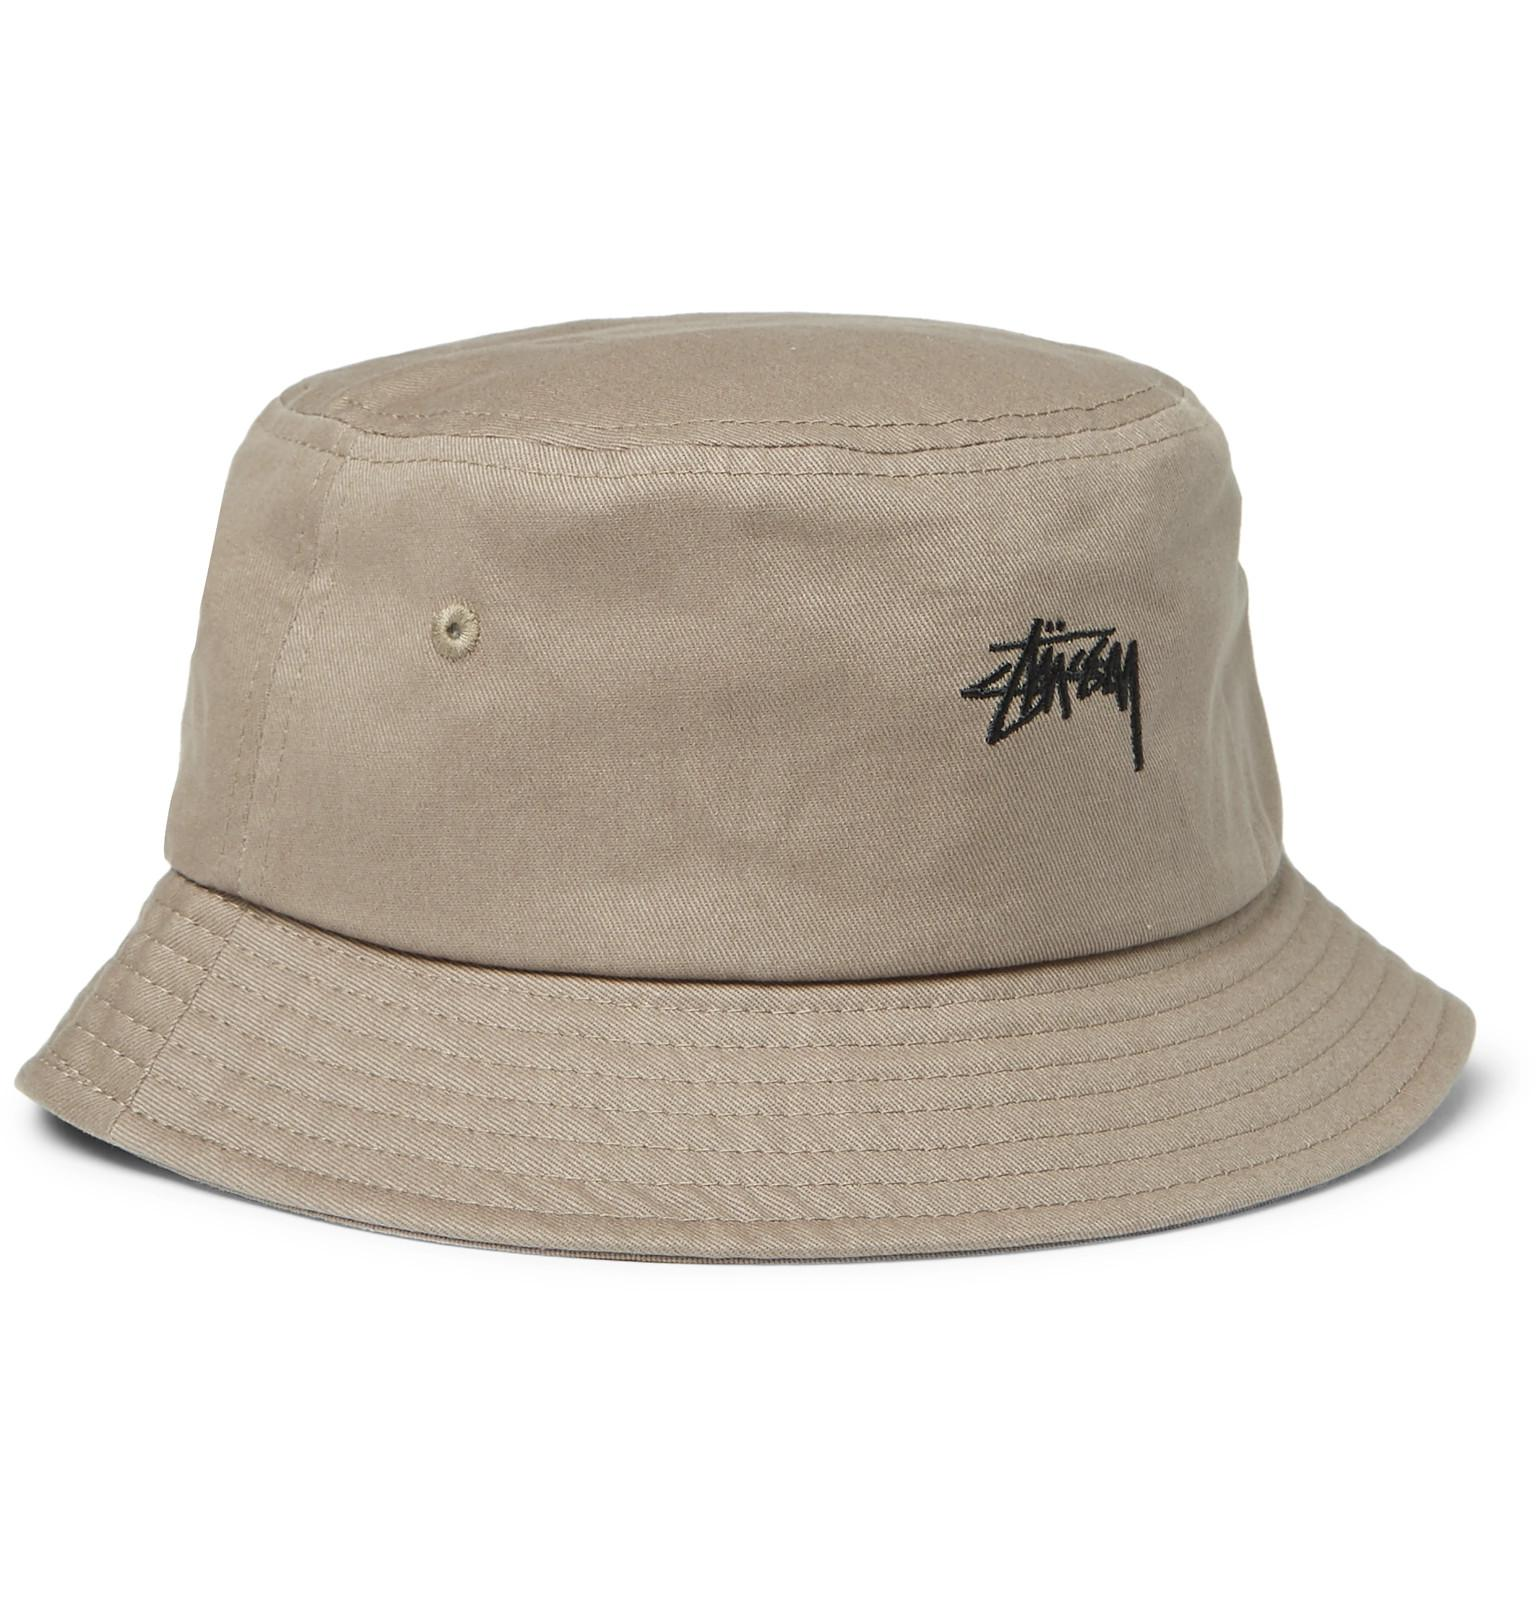 Lyst - Stussy Logo-embroidered Cotton-canvas Bucket Hat for Men 394a6eeff1ef